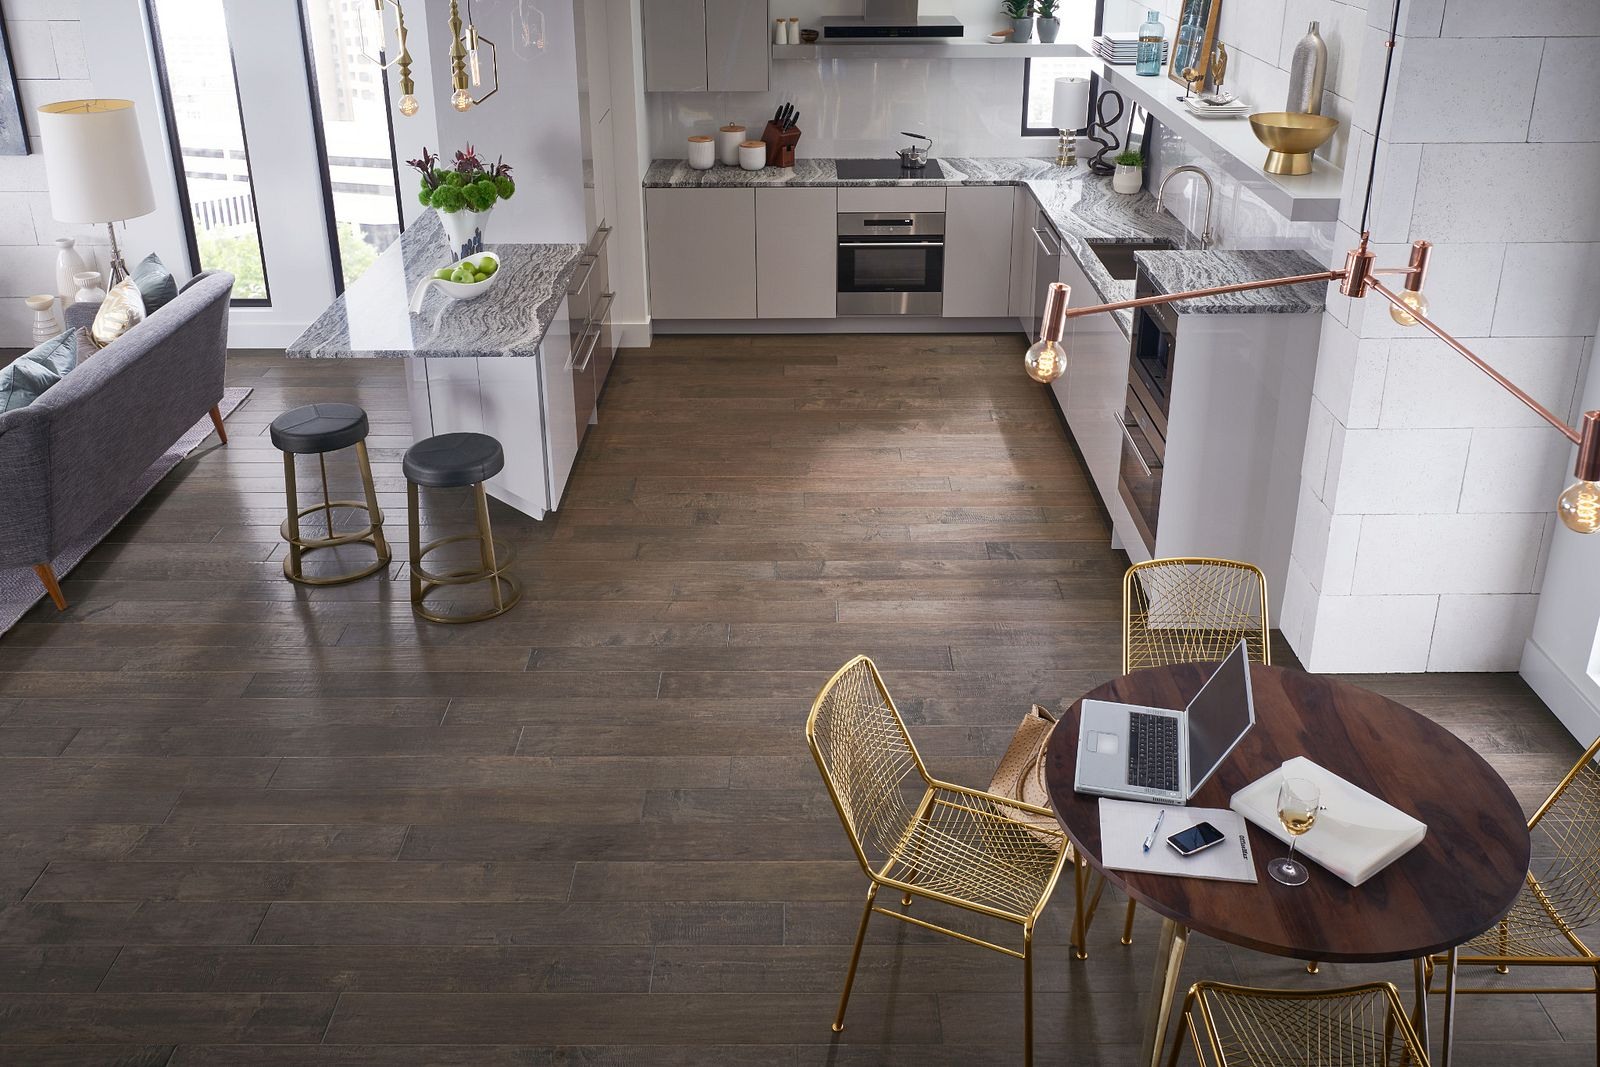 Shaw Floors Featured In Show Homes